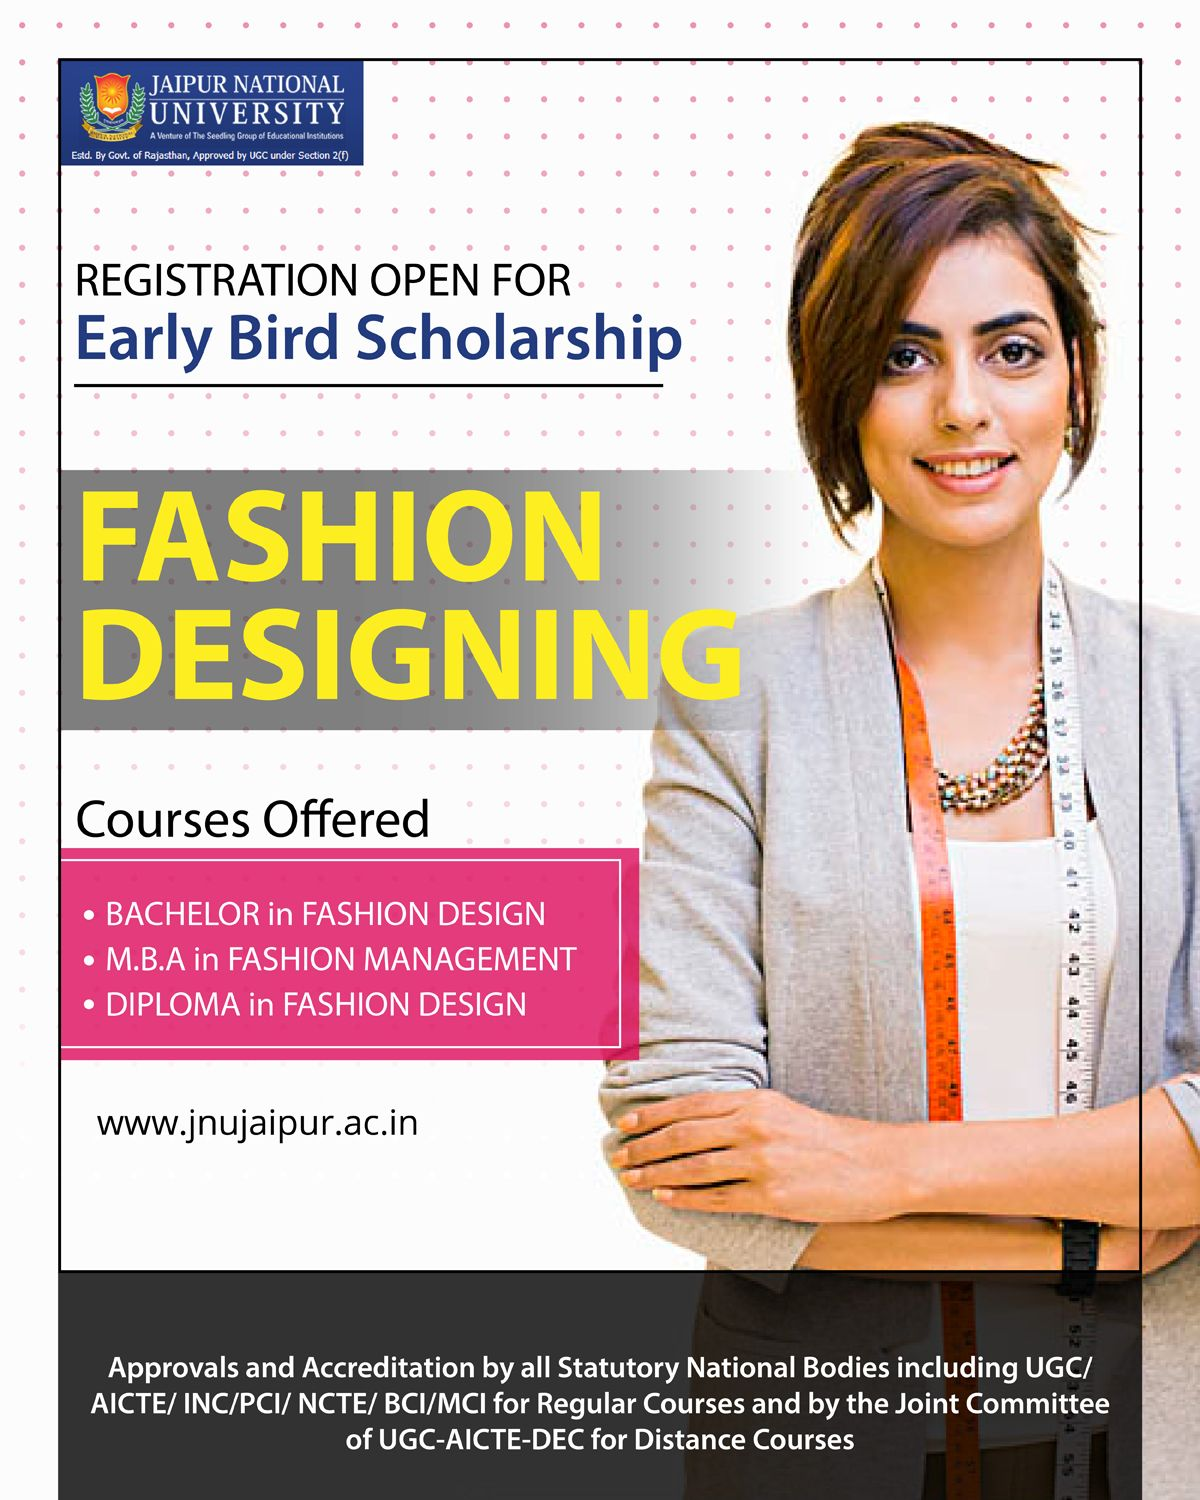 Study The Art Of Designing And Pursue Your Passion For Fashion At Jnu Admissions 2019 20 With Images Diploma In Fashion Designing Fashion Designing Course Scholarships